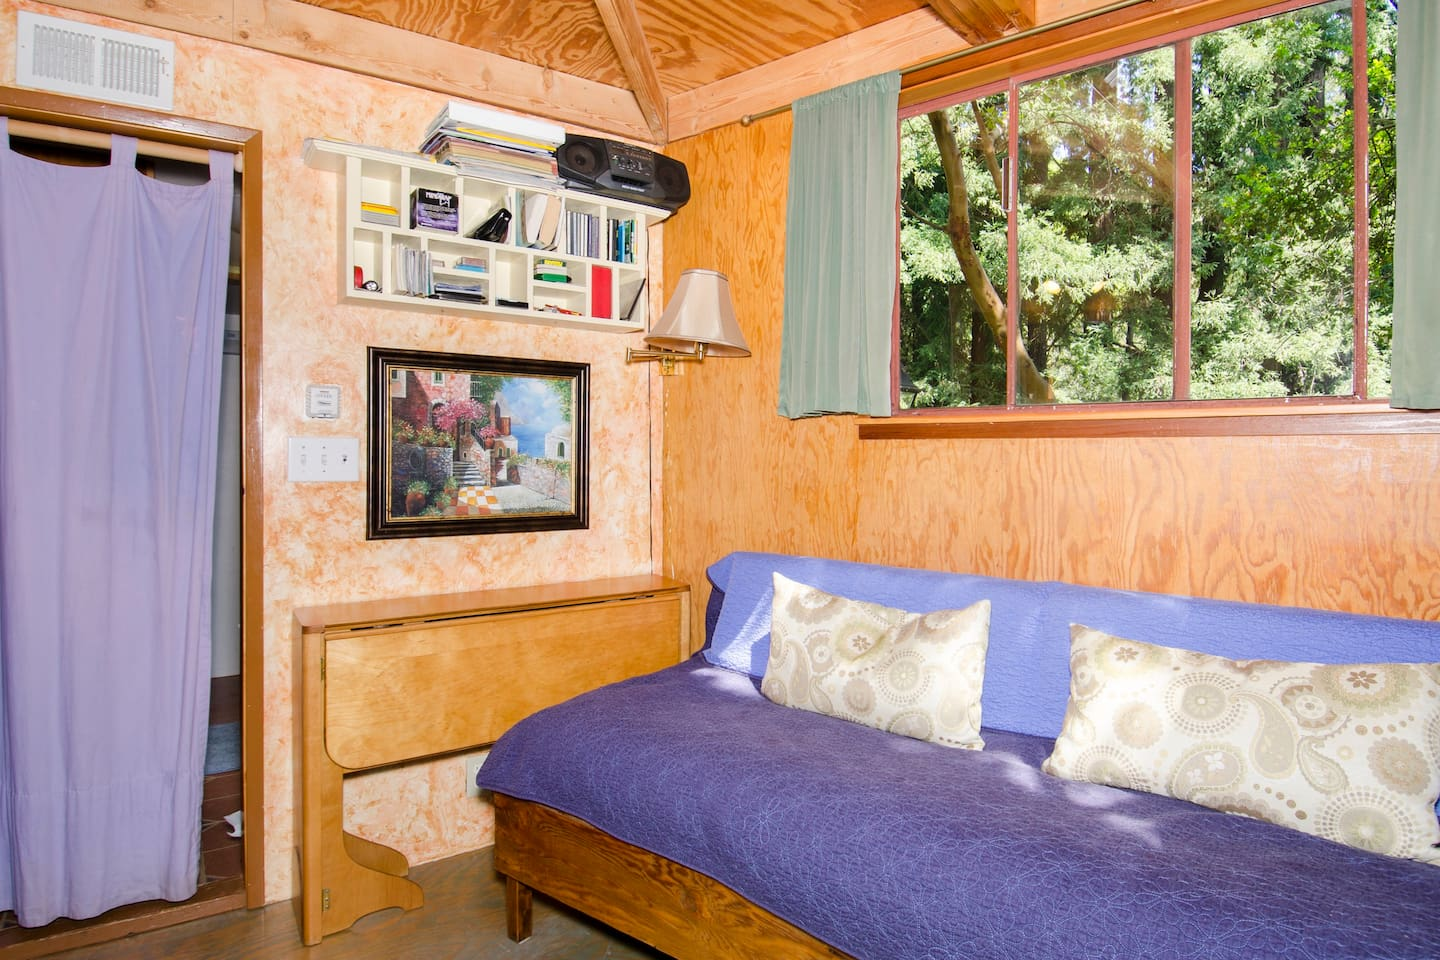 Downstairs is the couch, which can be used as the single bed. Up against the wall is the folding table. You can see the Redwood Grove through the window.